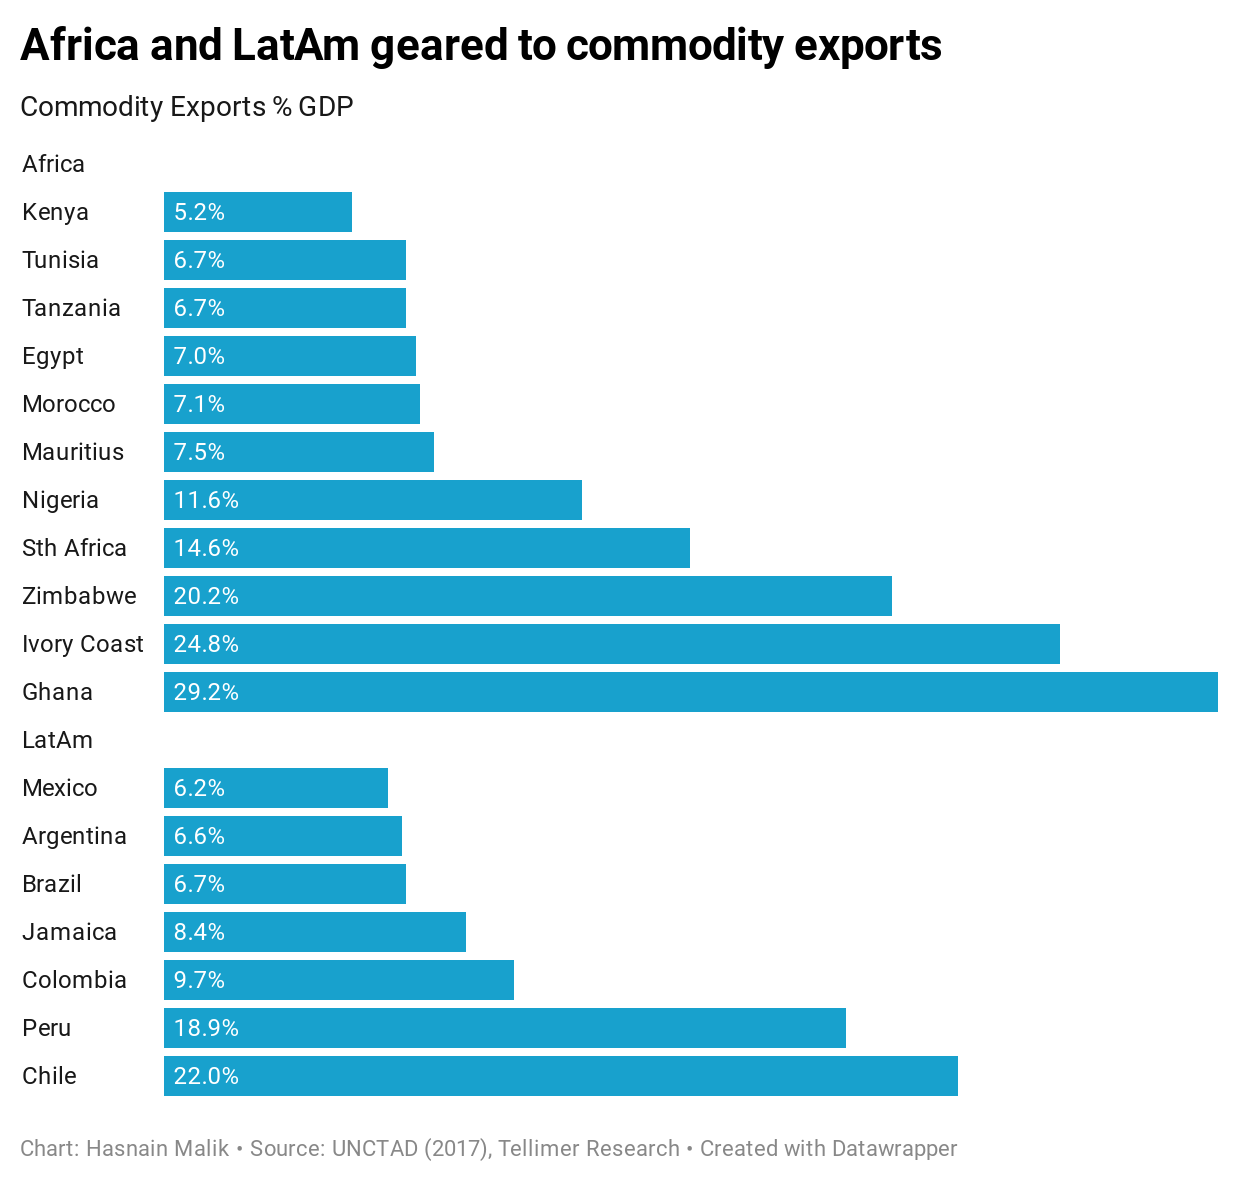 Africa and LatAm geared to commodity exports